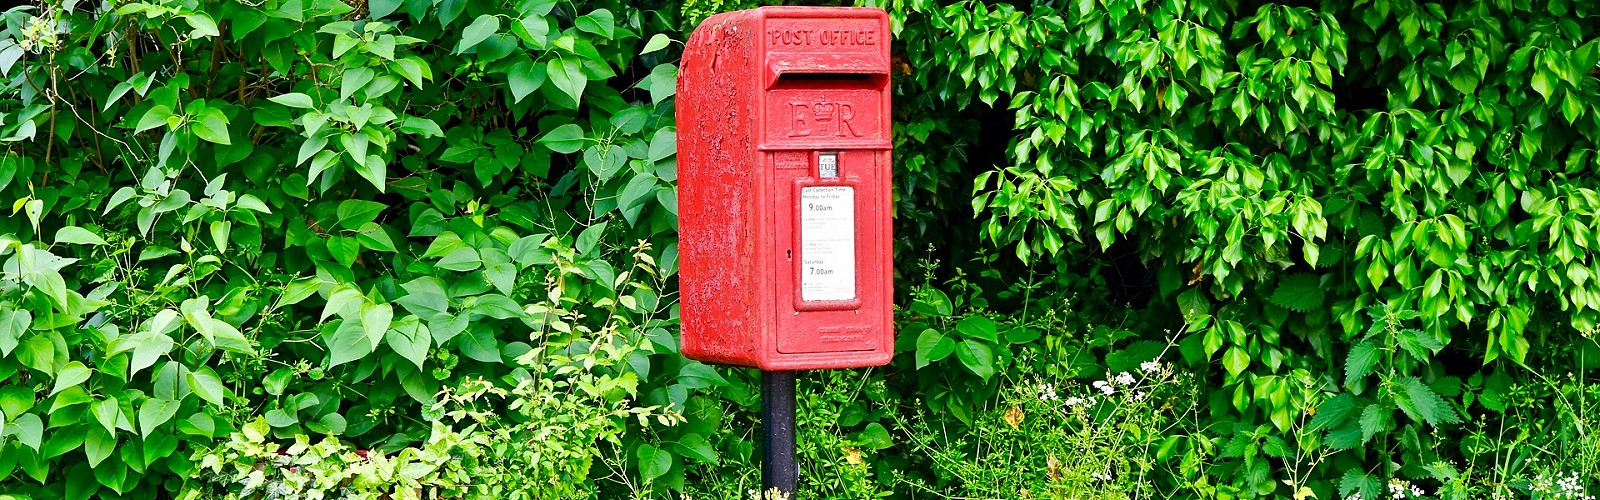 post box on an overgrown verge (image: MikesPhotos / Pixabay)